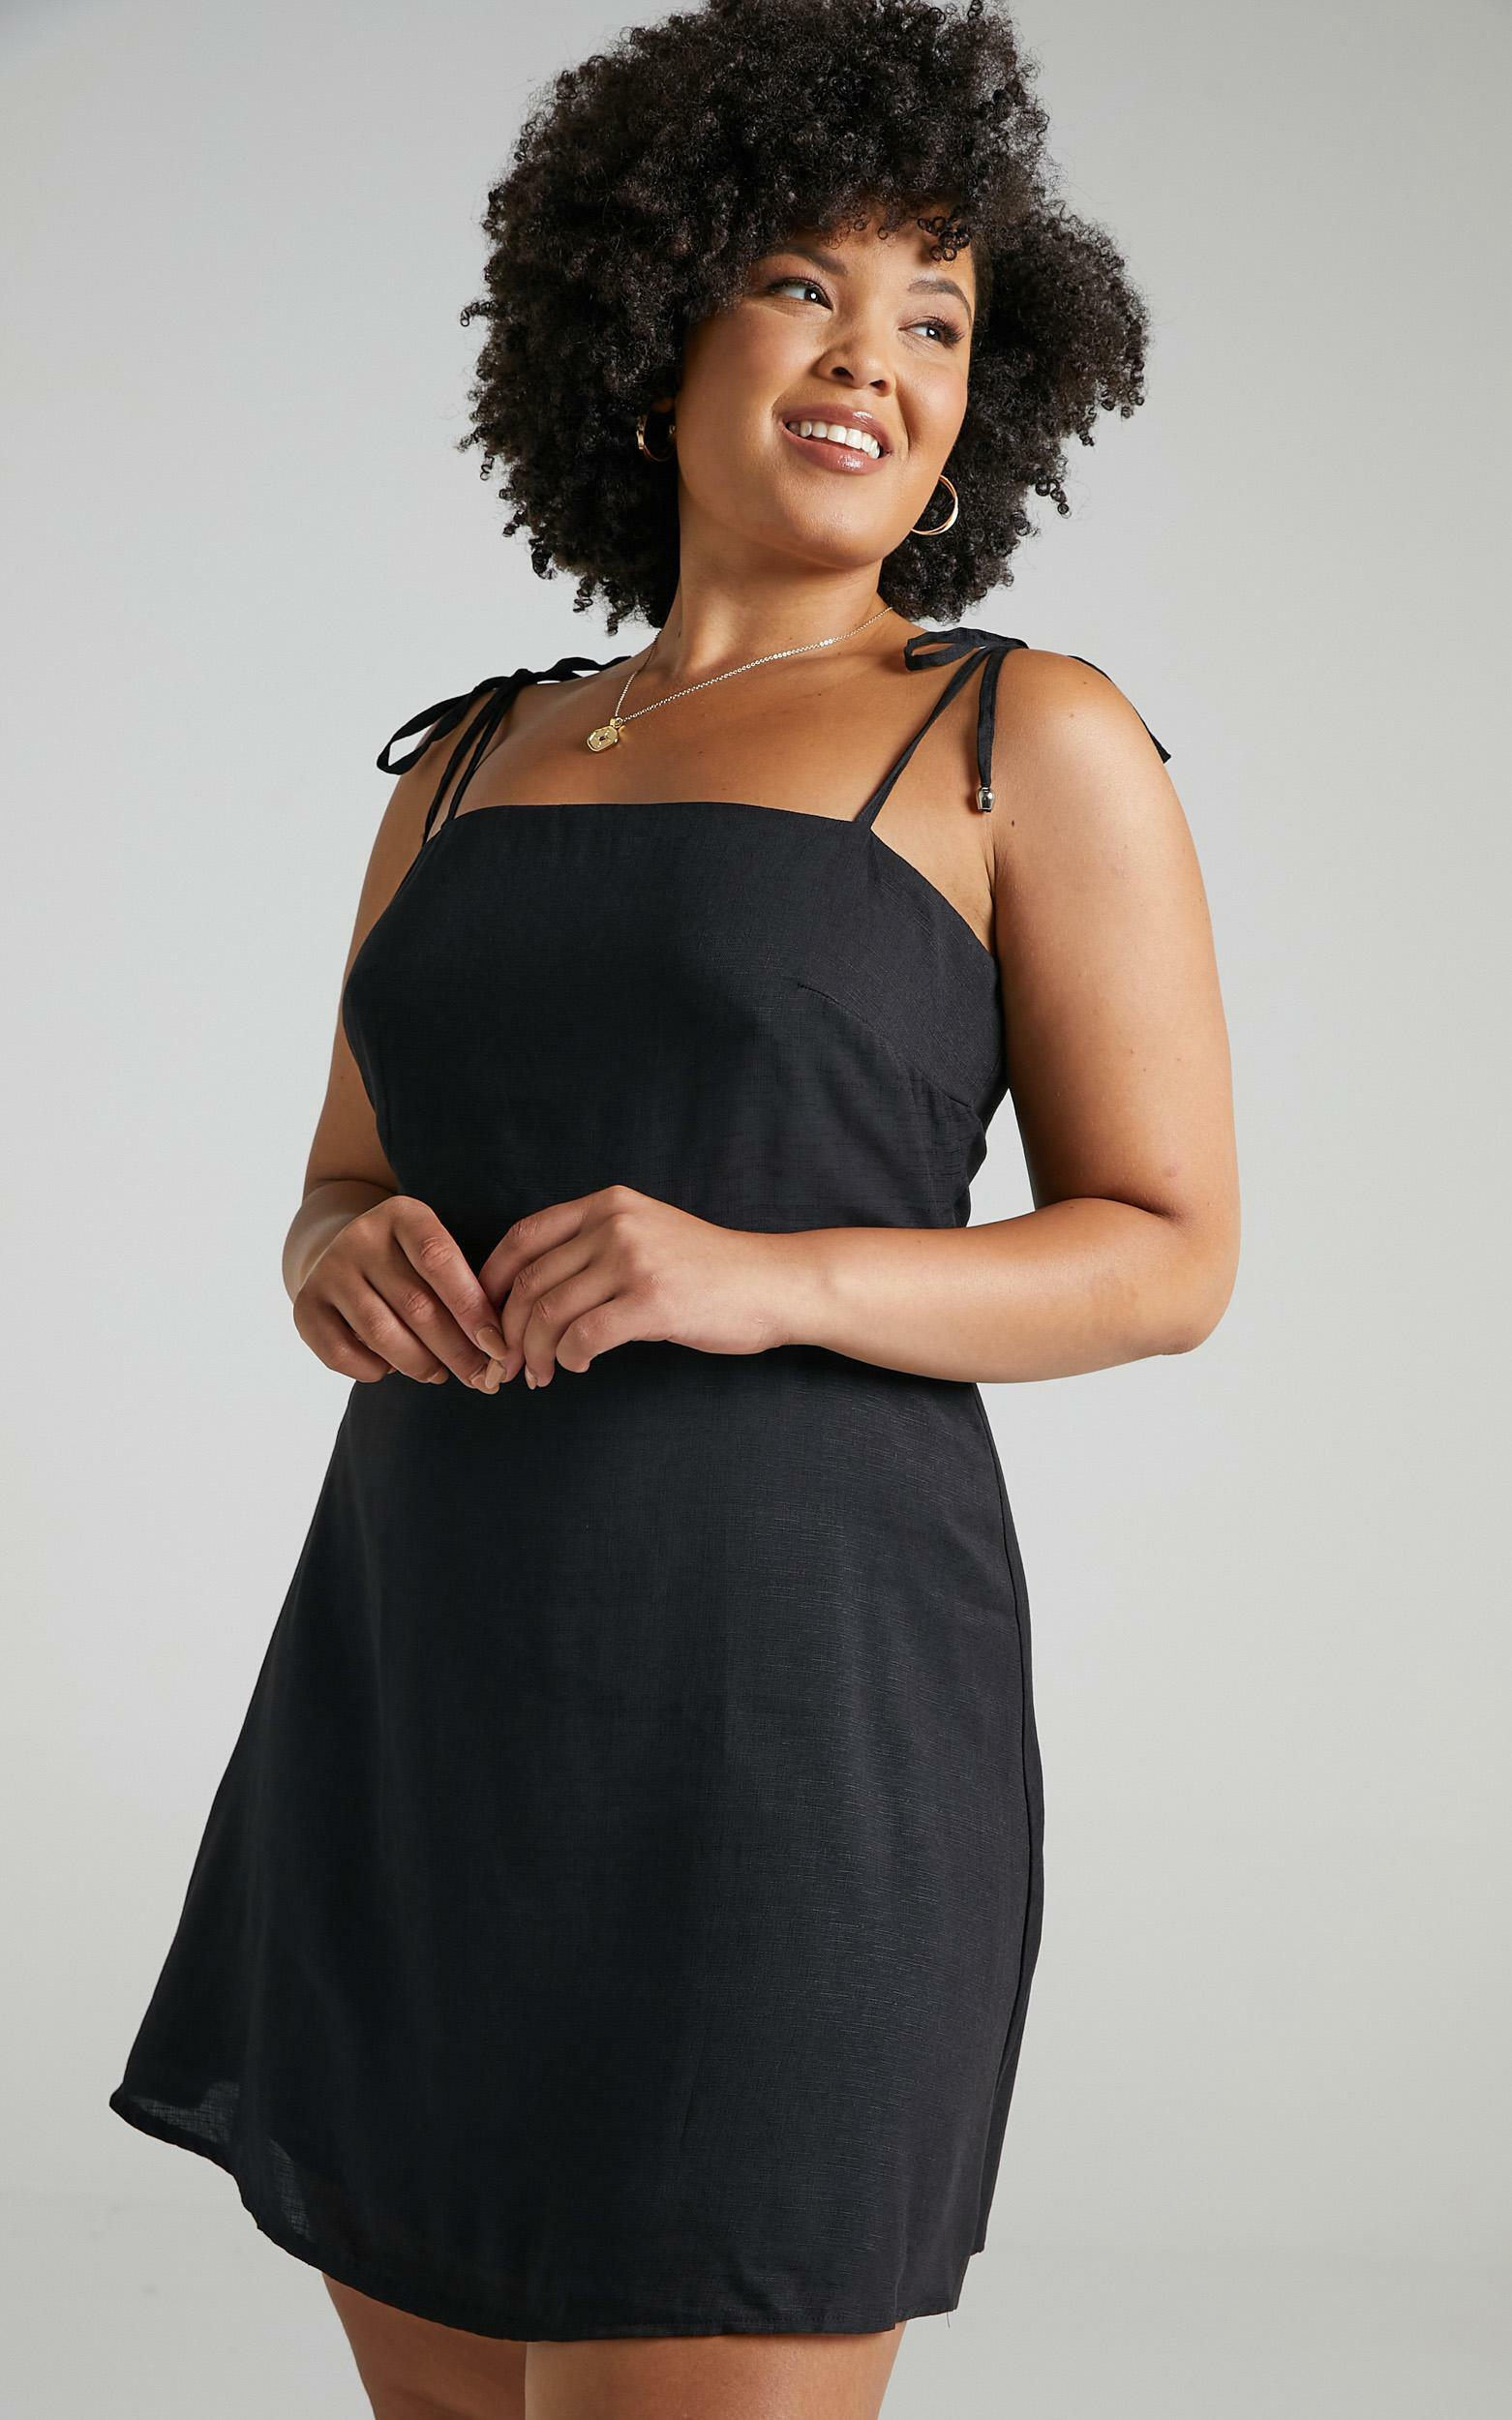 Afternoon Glow Dress in Charcoal - 20, GRY1, hi-res image number null